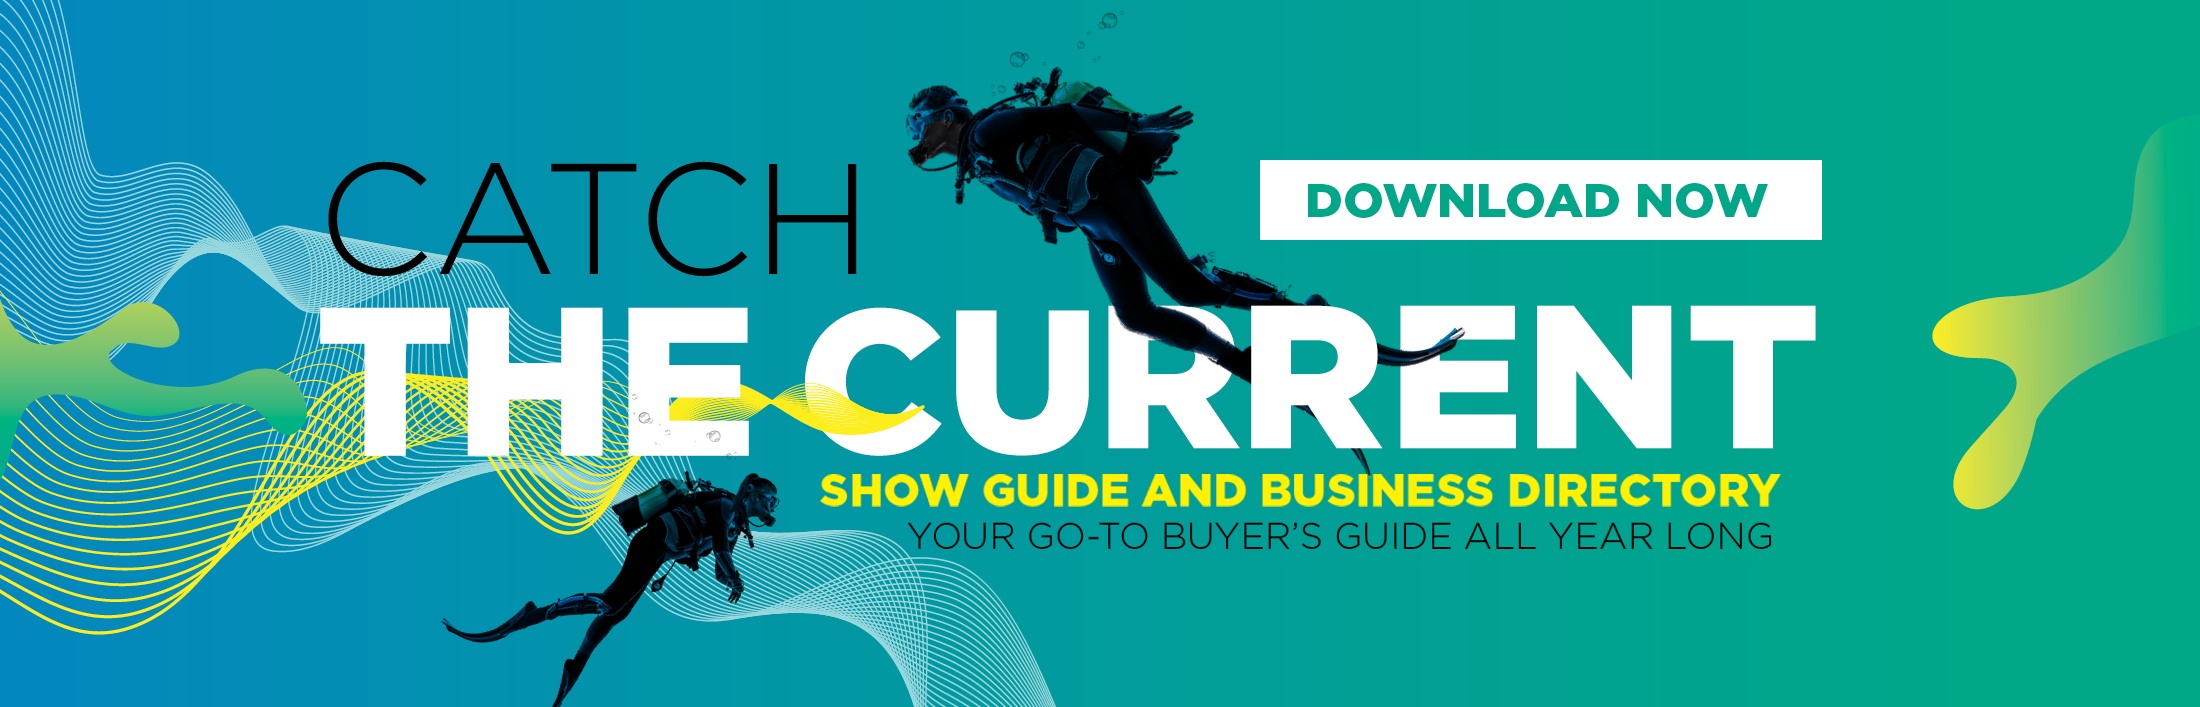 Show Guide and Business Directory